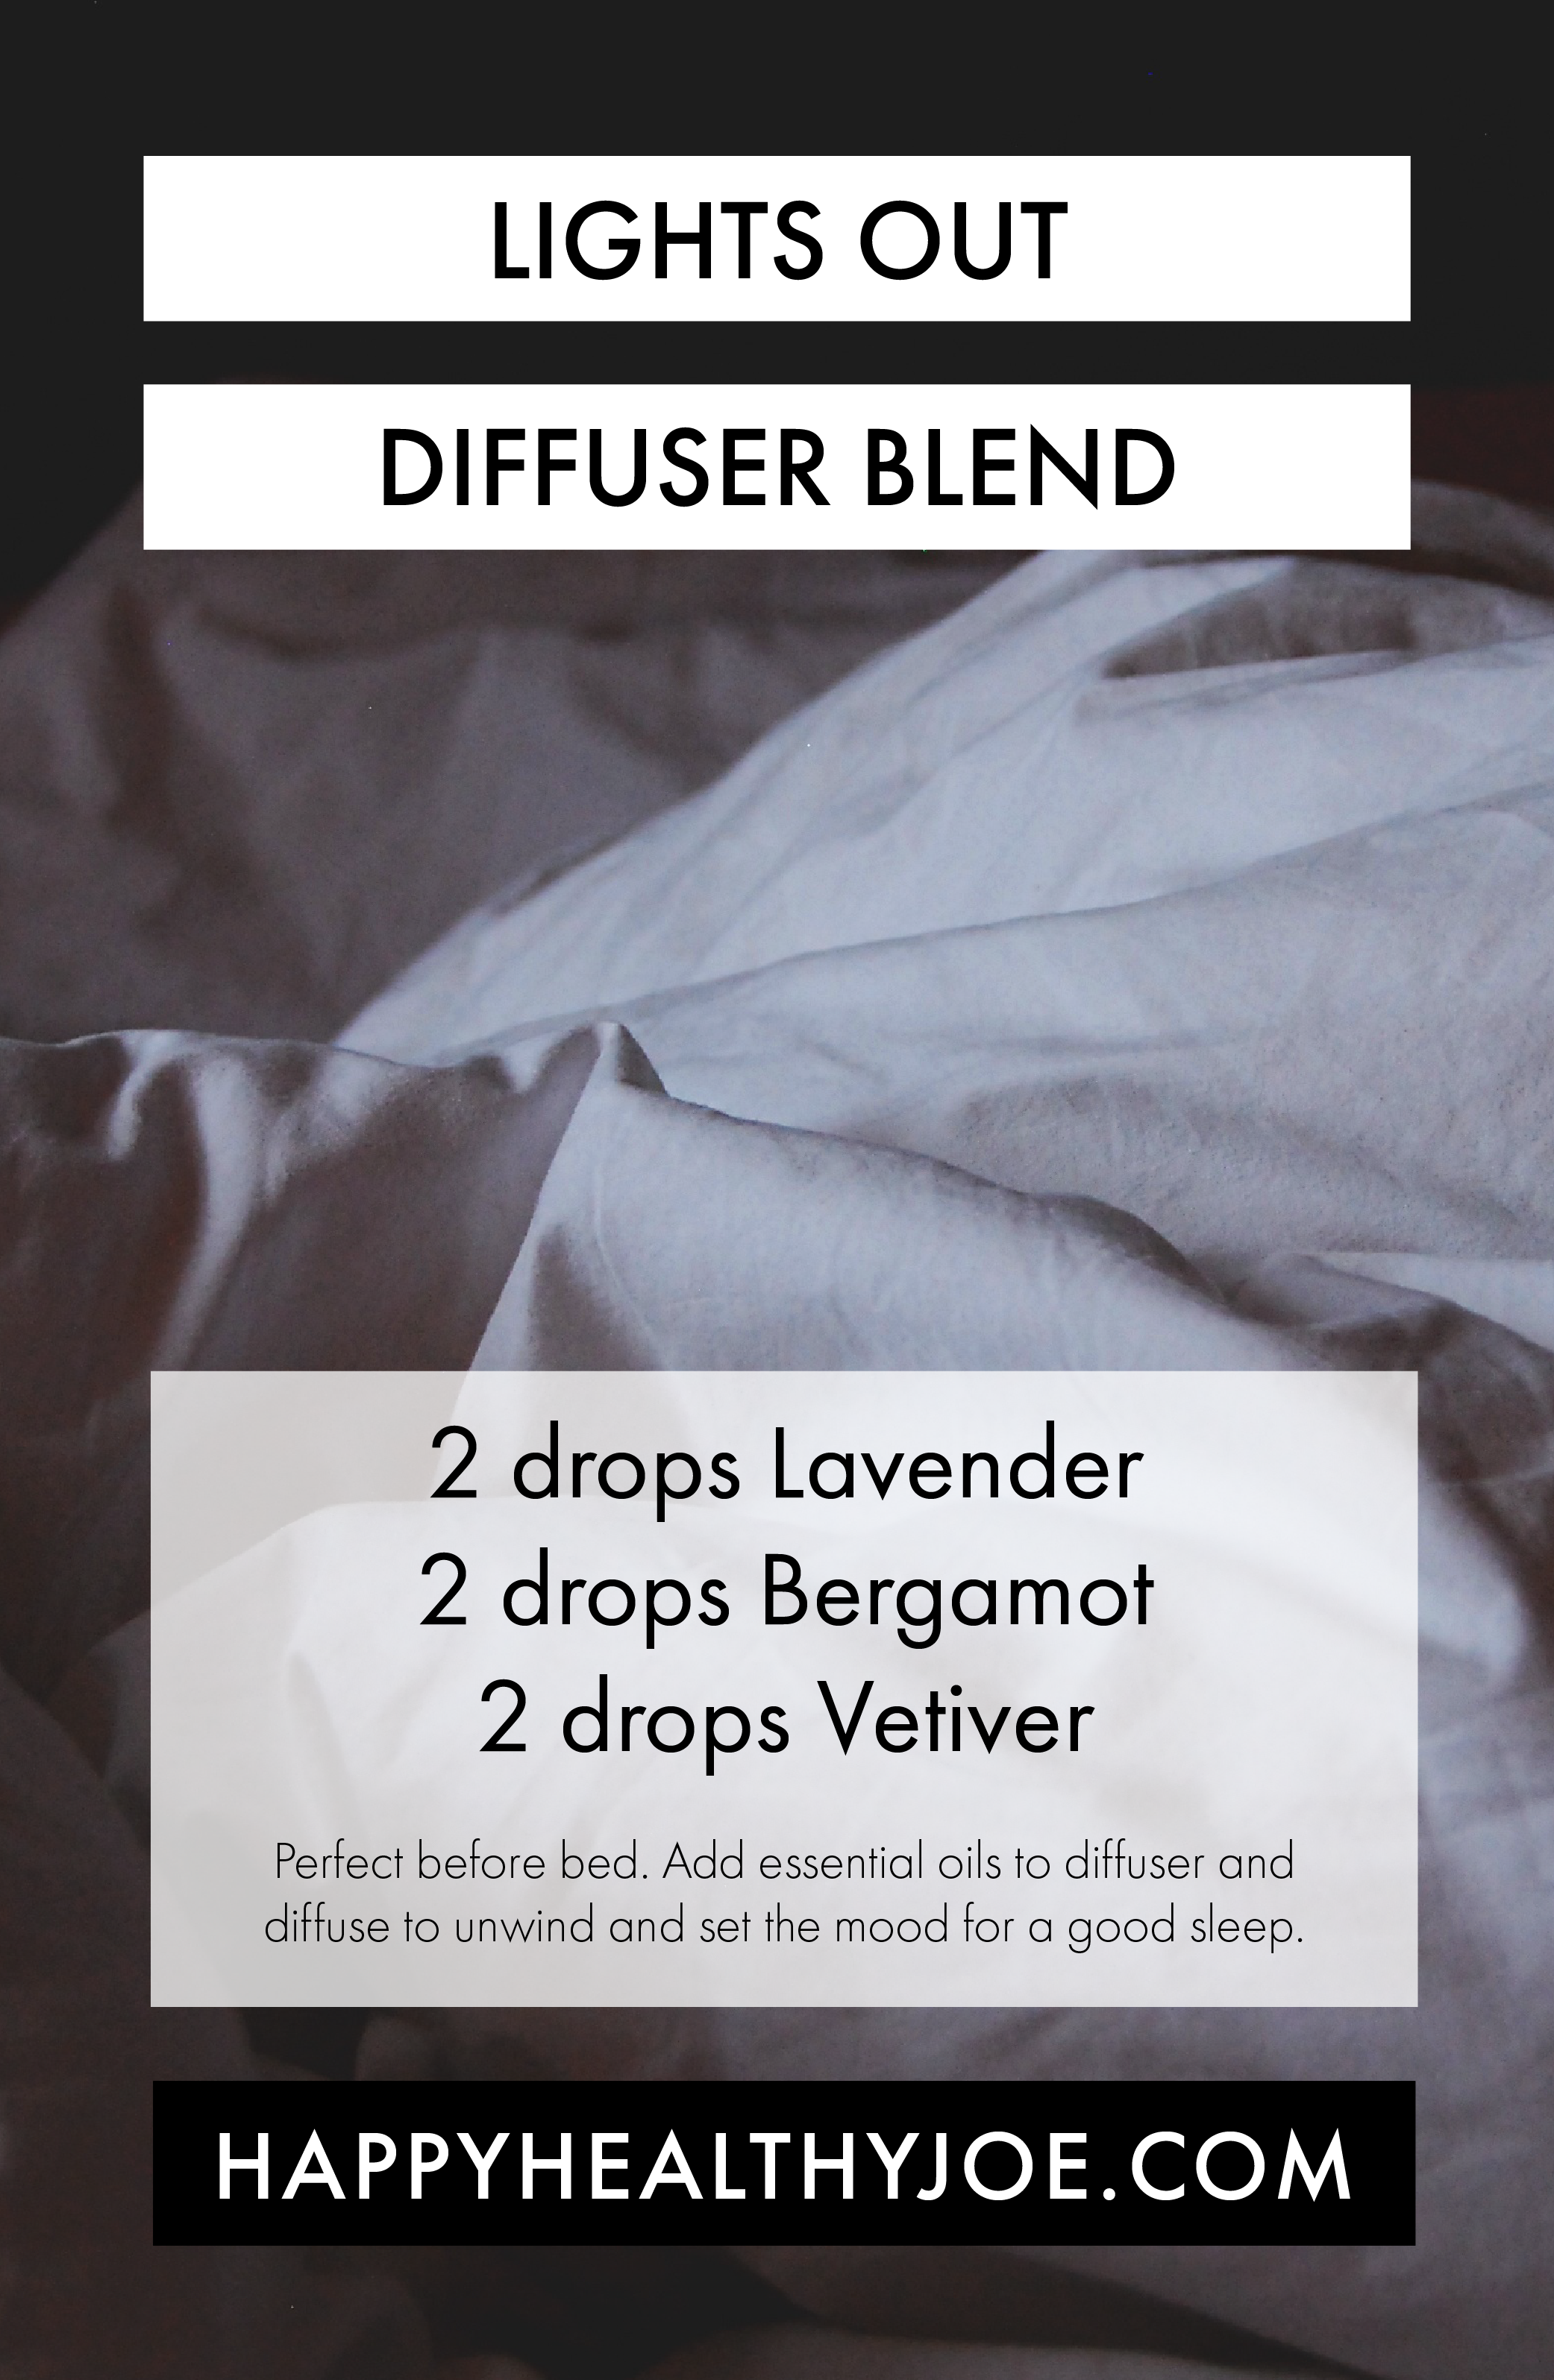 Sleep Well Tonight With This doTERRA Essential Oil Diffuser Blend Happy Healthy Joe Integrative Health Coach